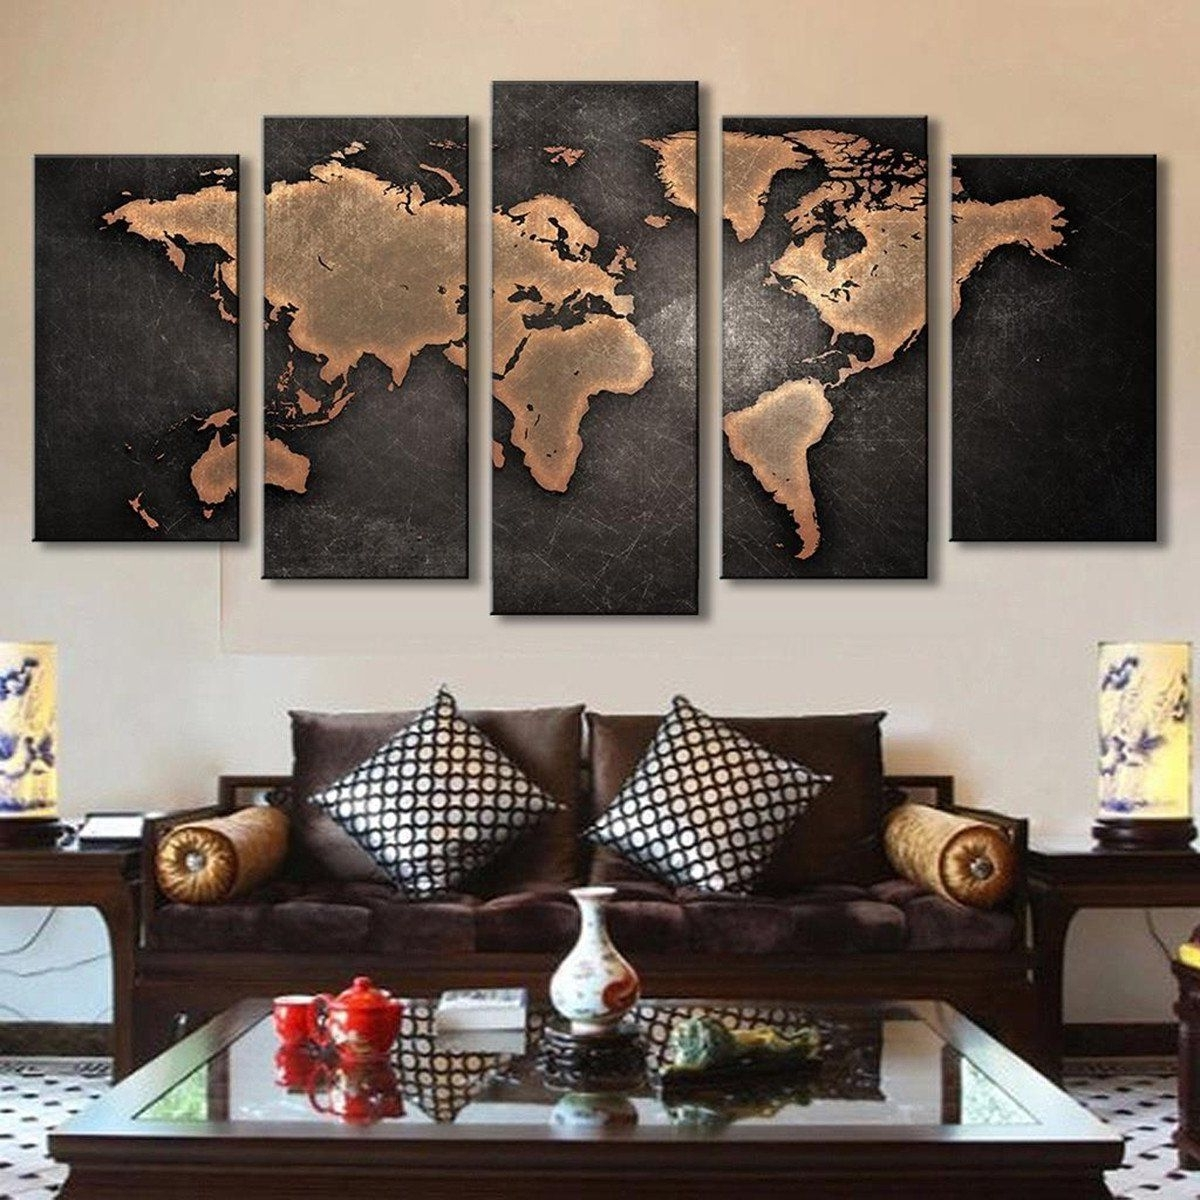 Fashionable Mivyy- Frameless Huge Modern Abstract World Map Wall Art Canvas intended for World Map Wall Art Canvas